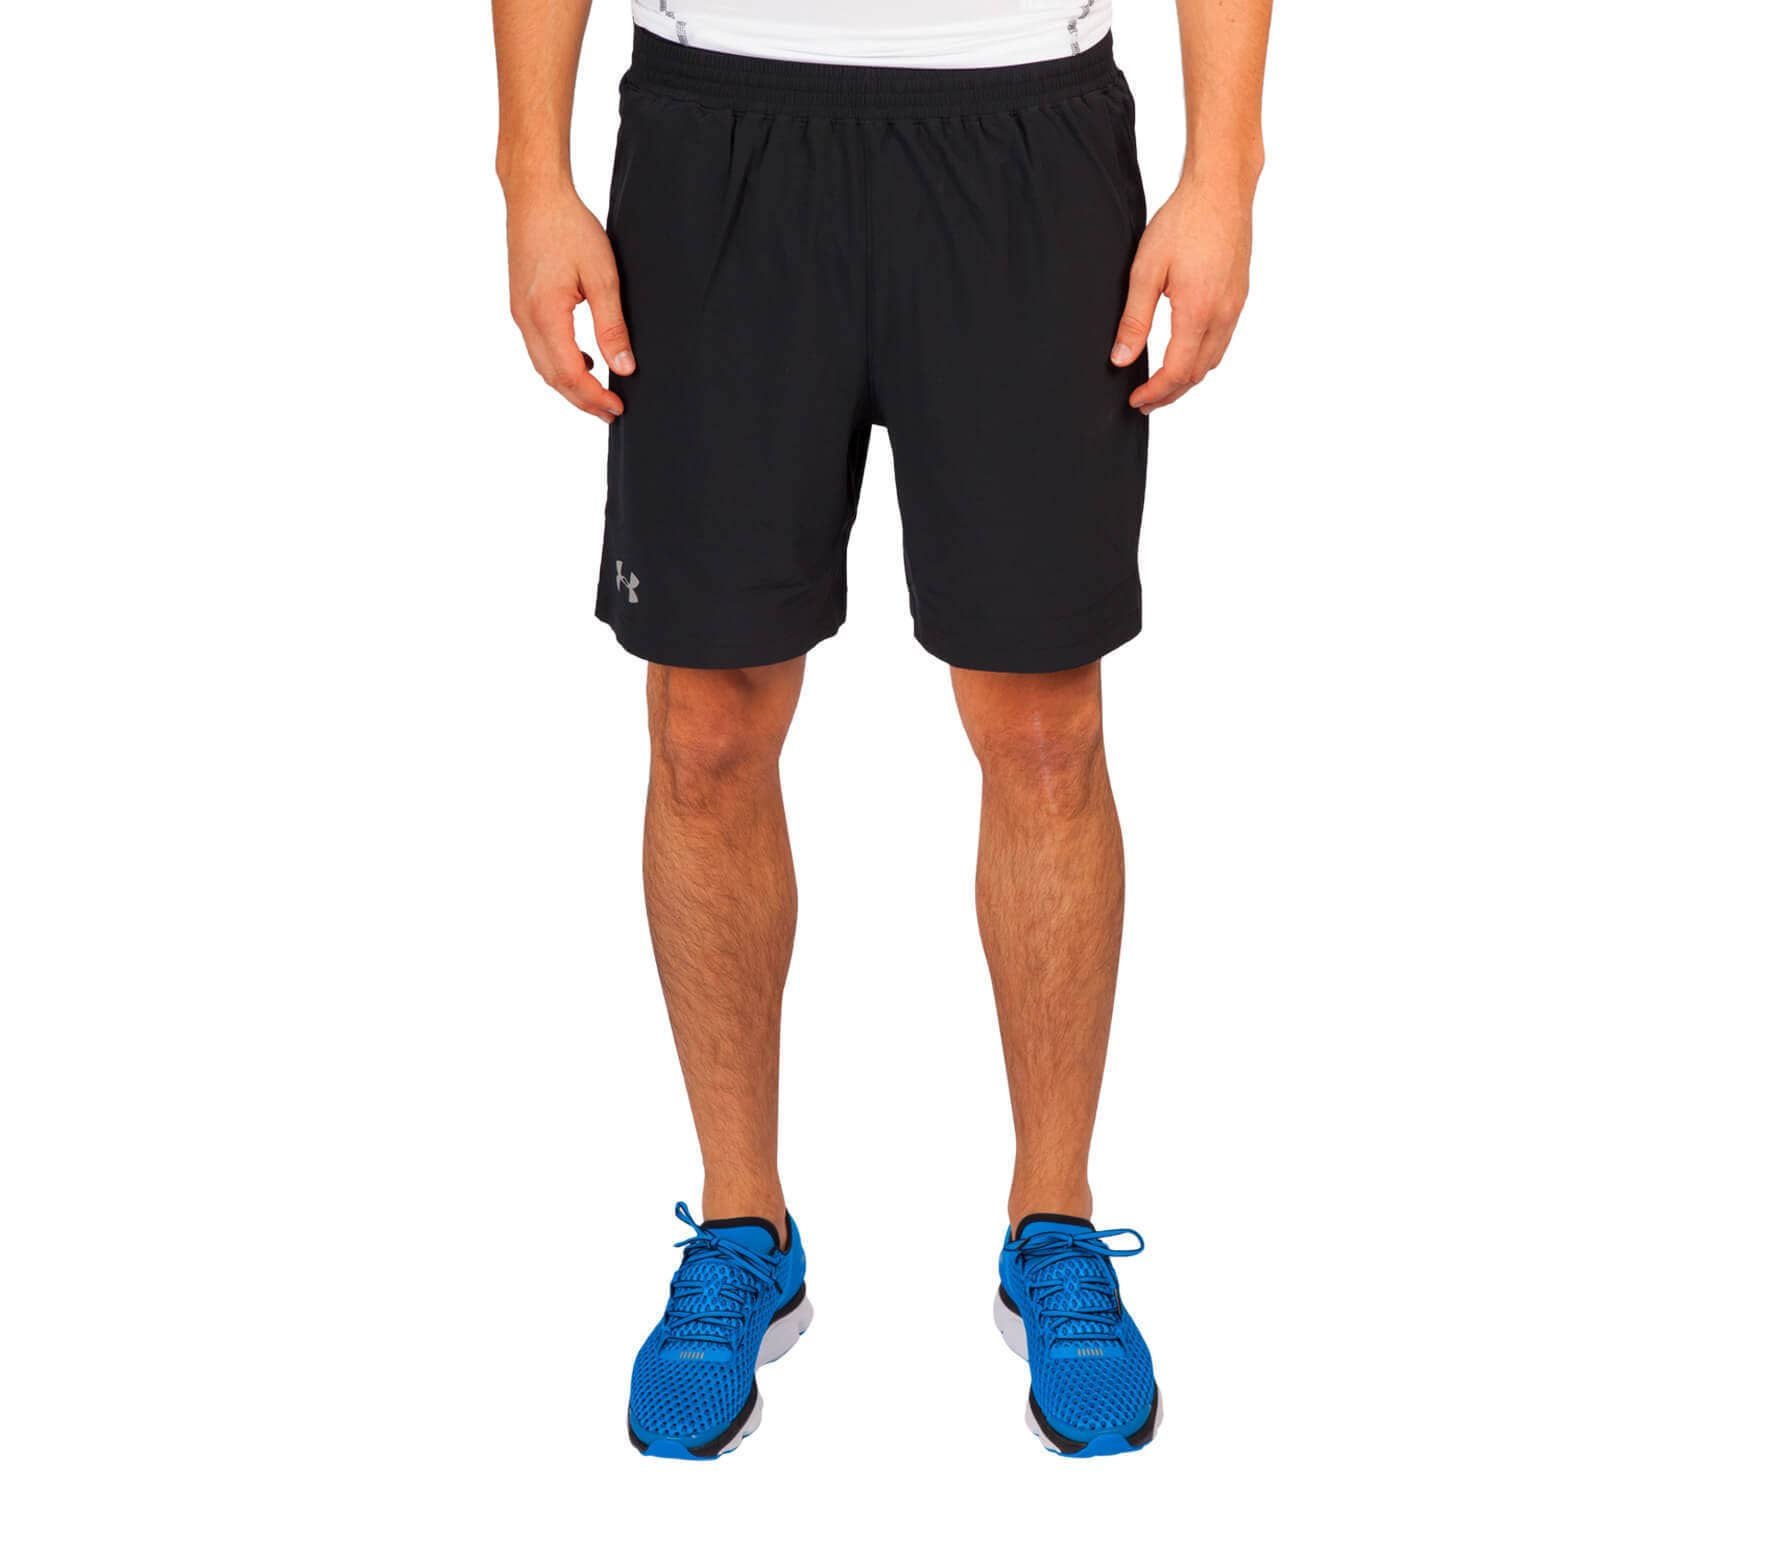 f9f12d552 Under Armour Launch 7 Inch 2-in-1 men's running shorts Men - buy it ...